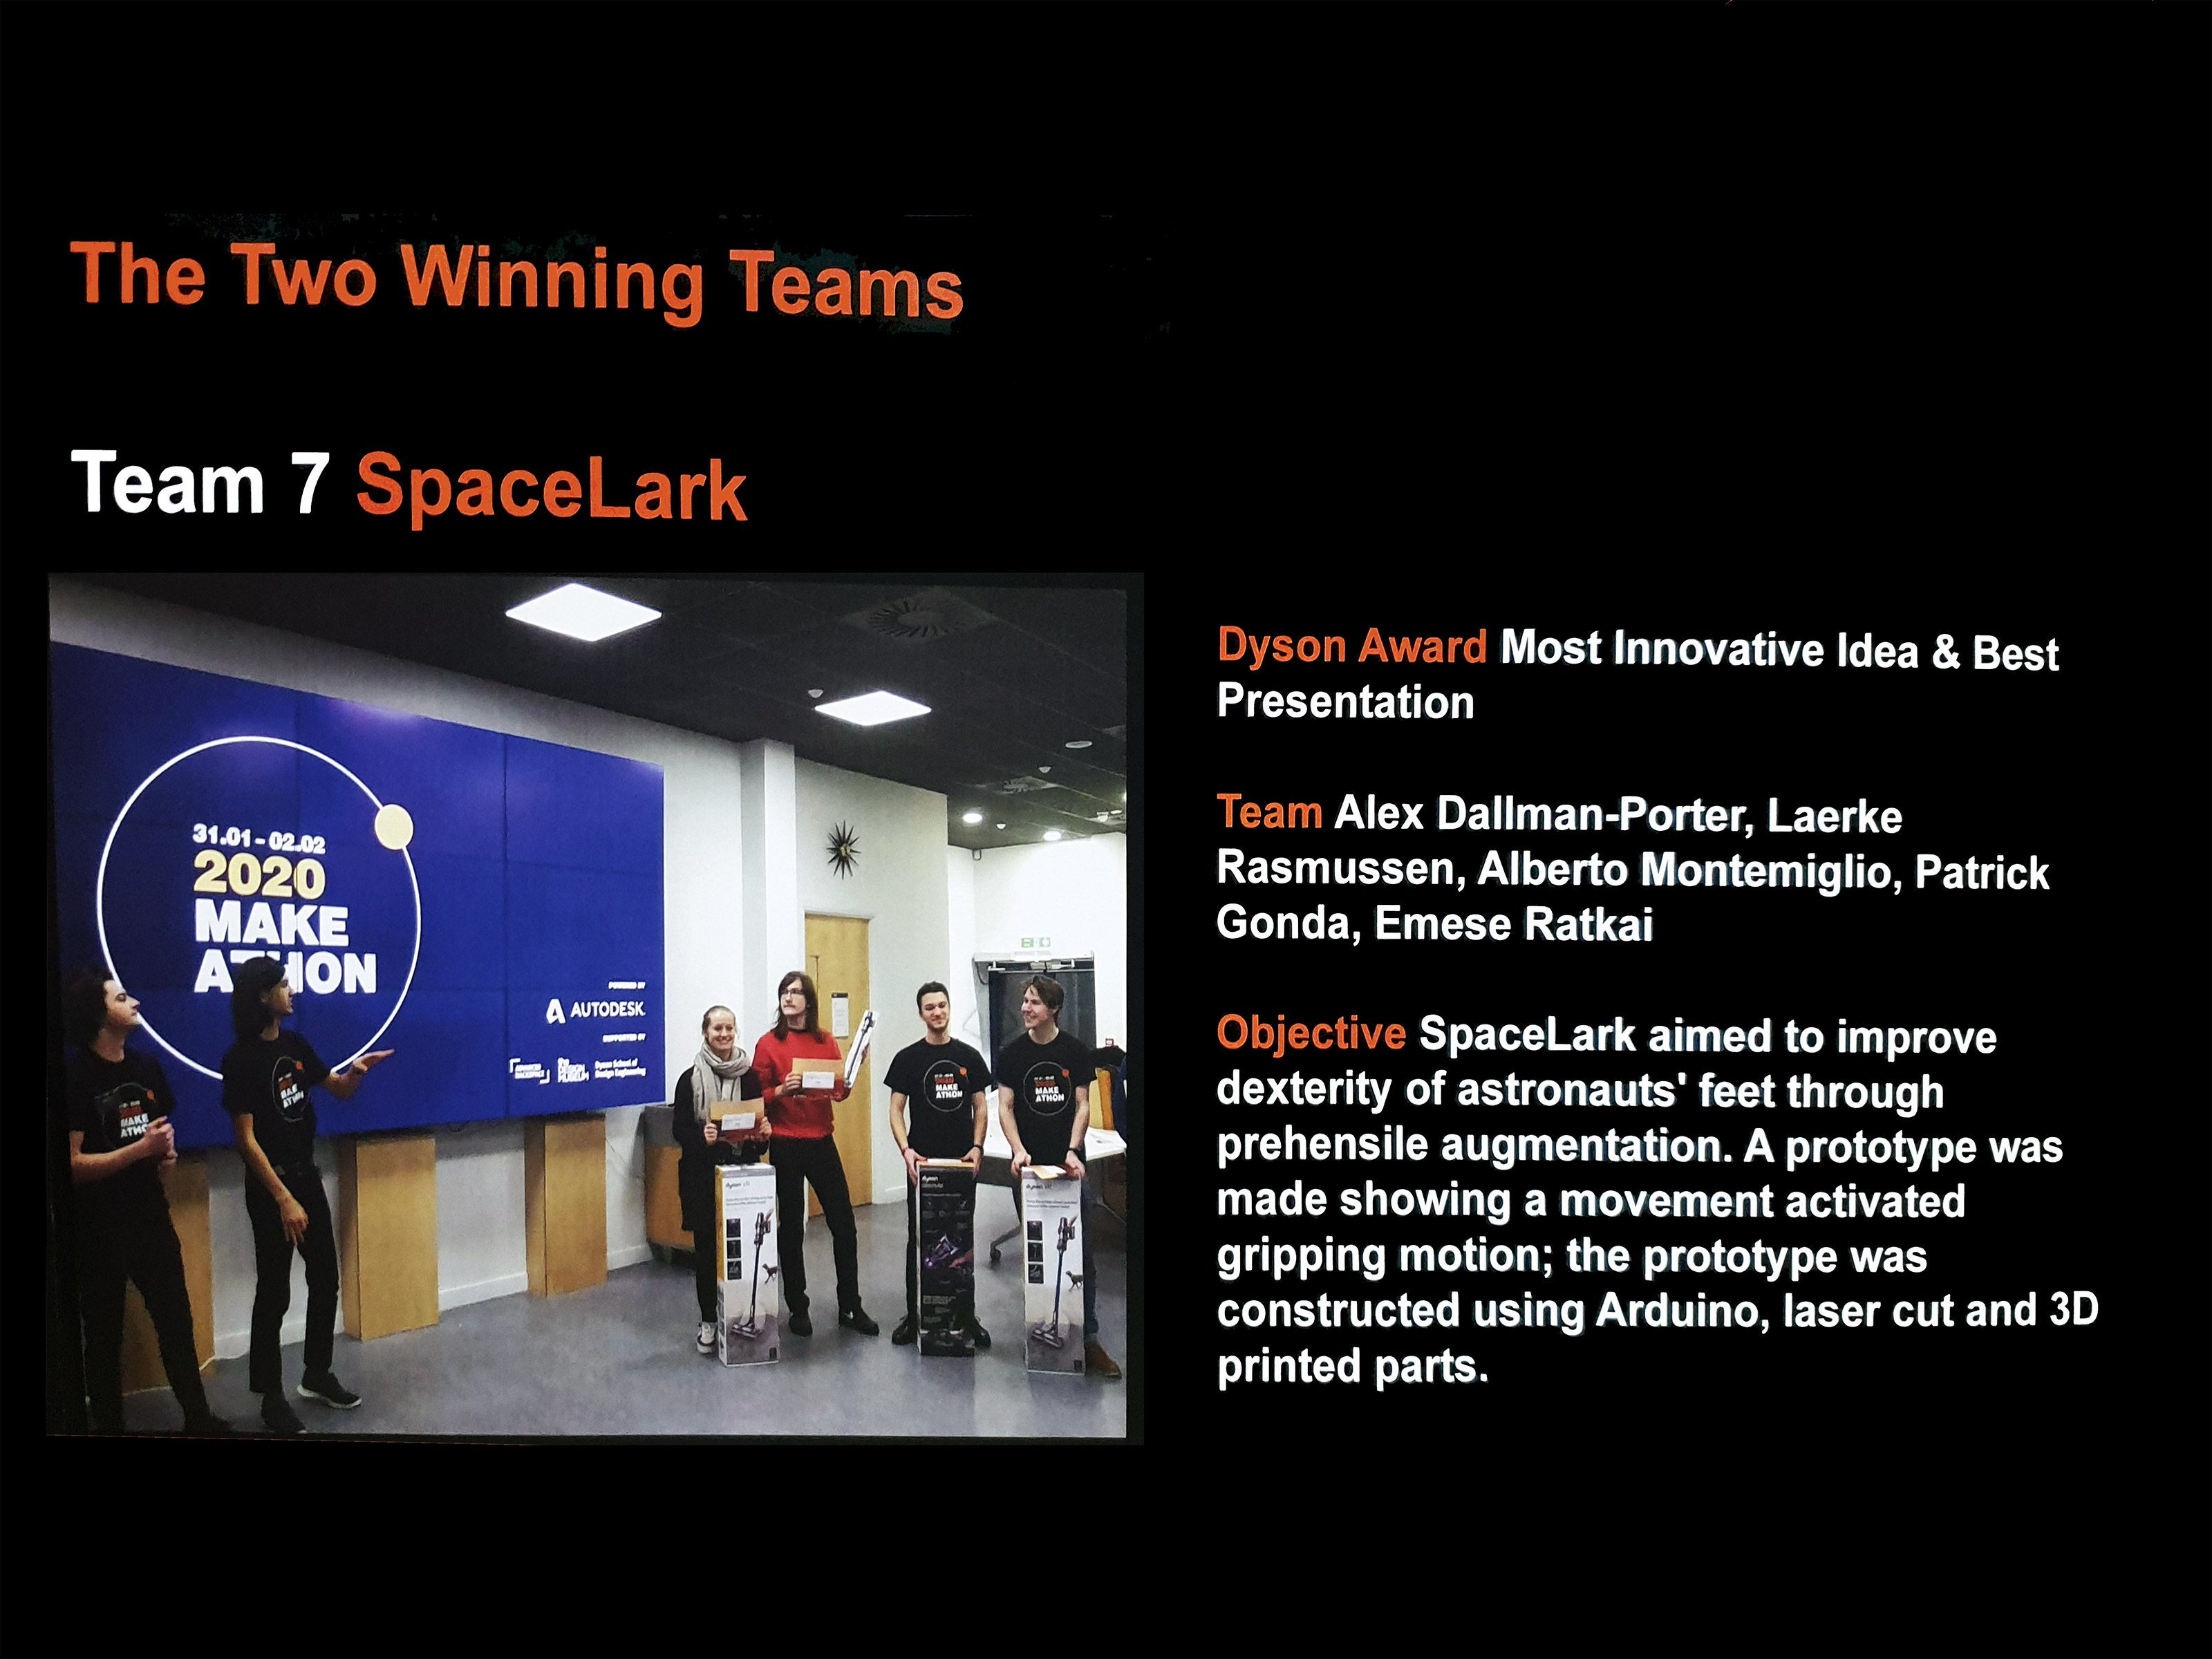 Our team was one of the winners